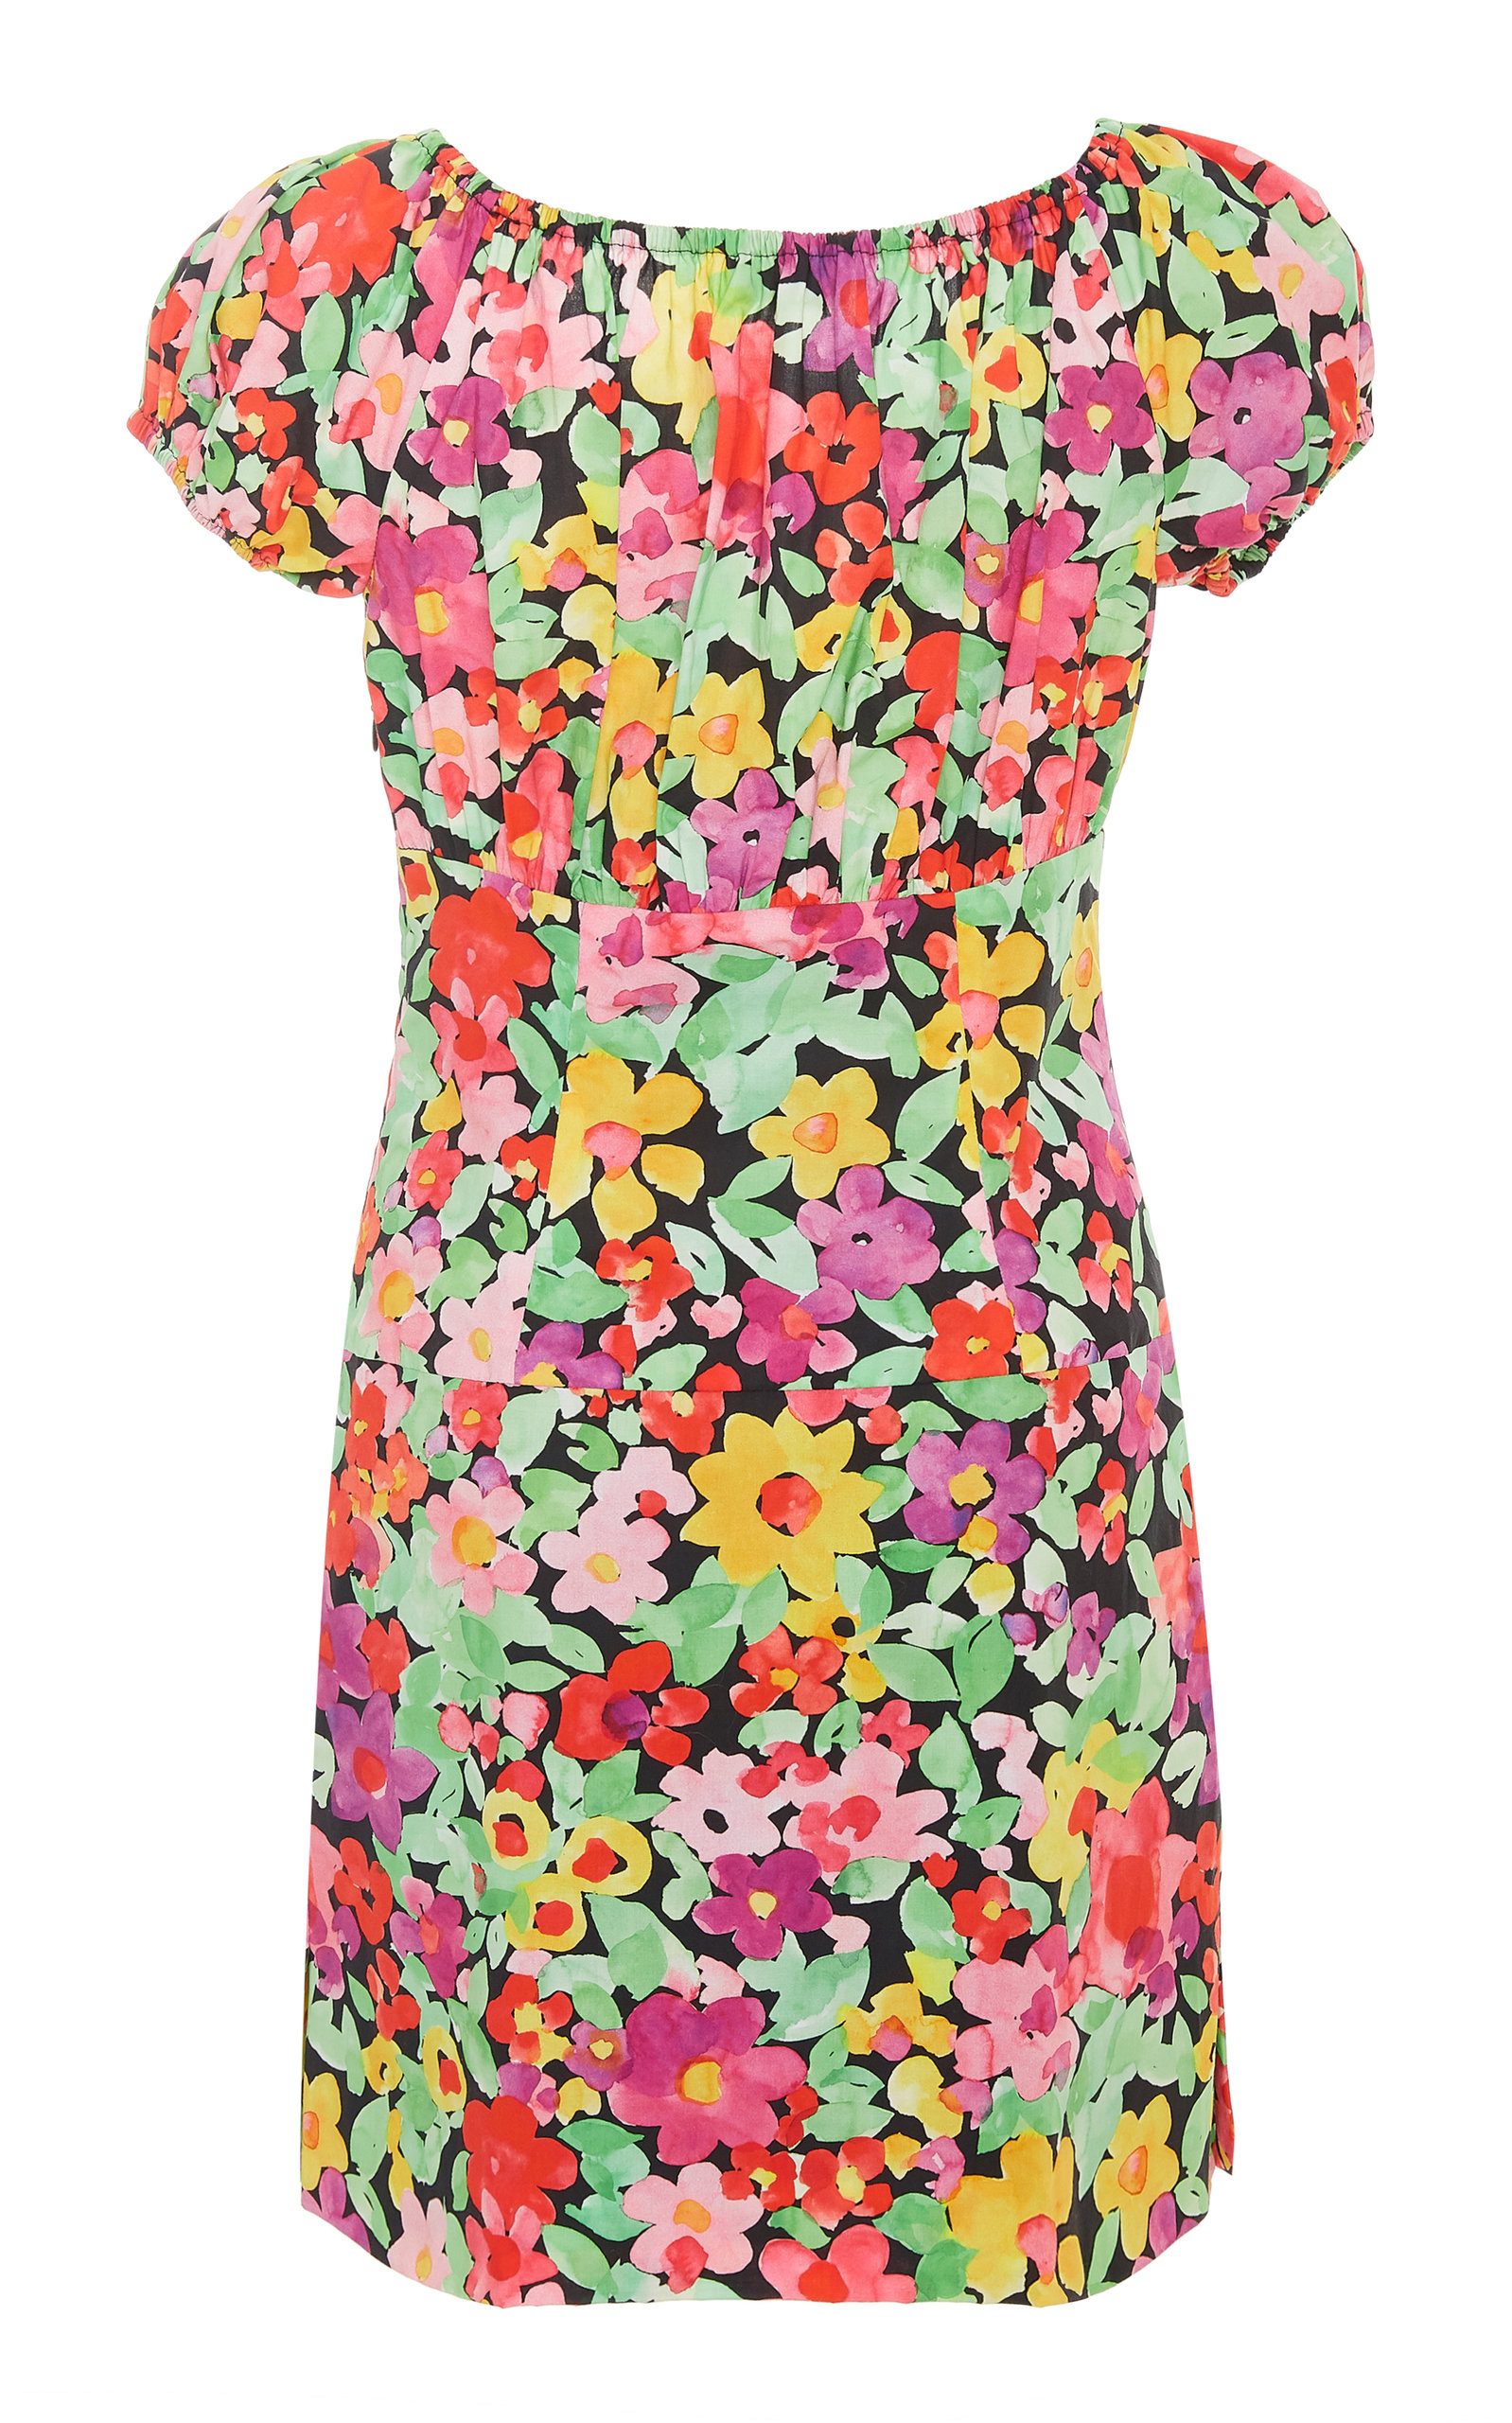 076959de112d Caroline ConstasCalla Off-The-Shoulder Floral-Print Cotton Mini Dress.  CLOSE. Loading. Loading